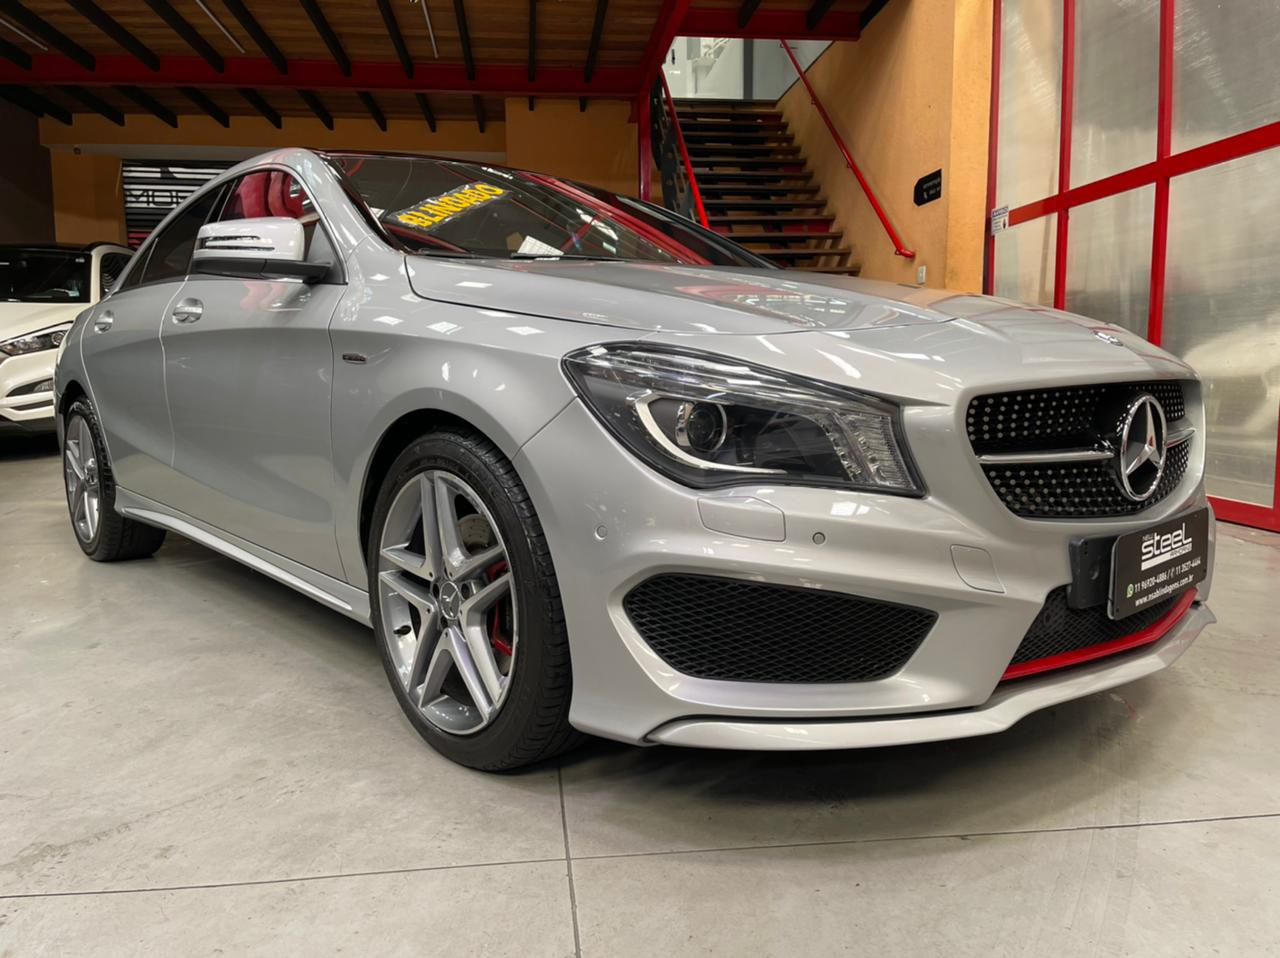 Mercedes Benz CLA 250 Blindado